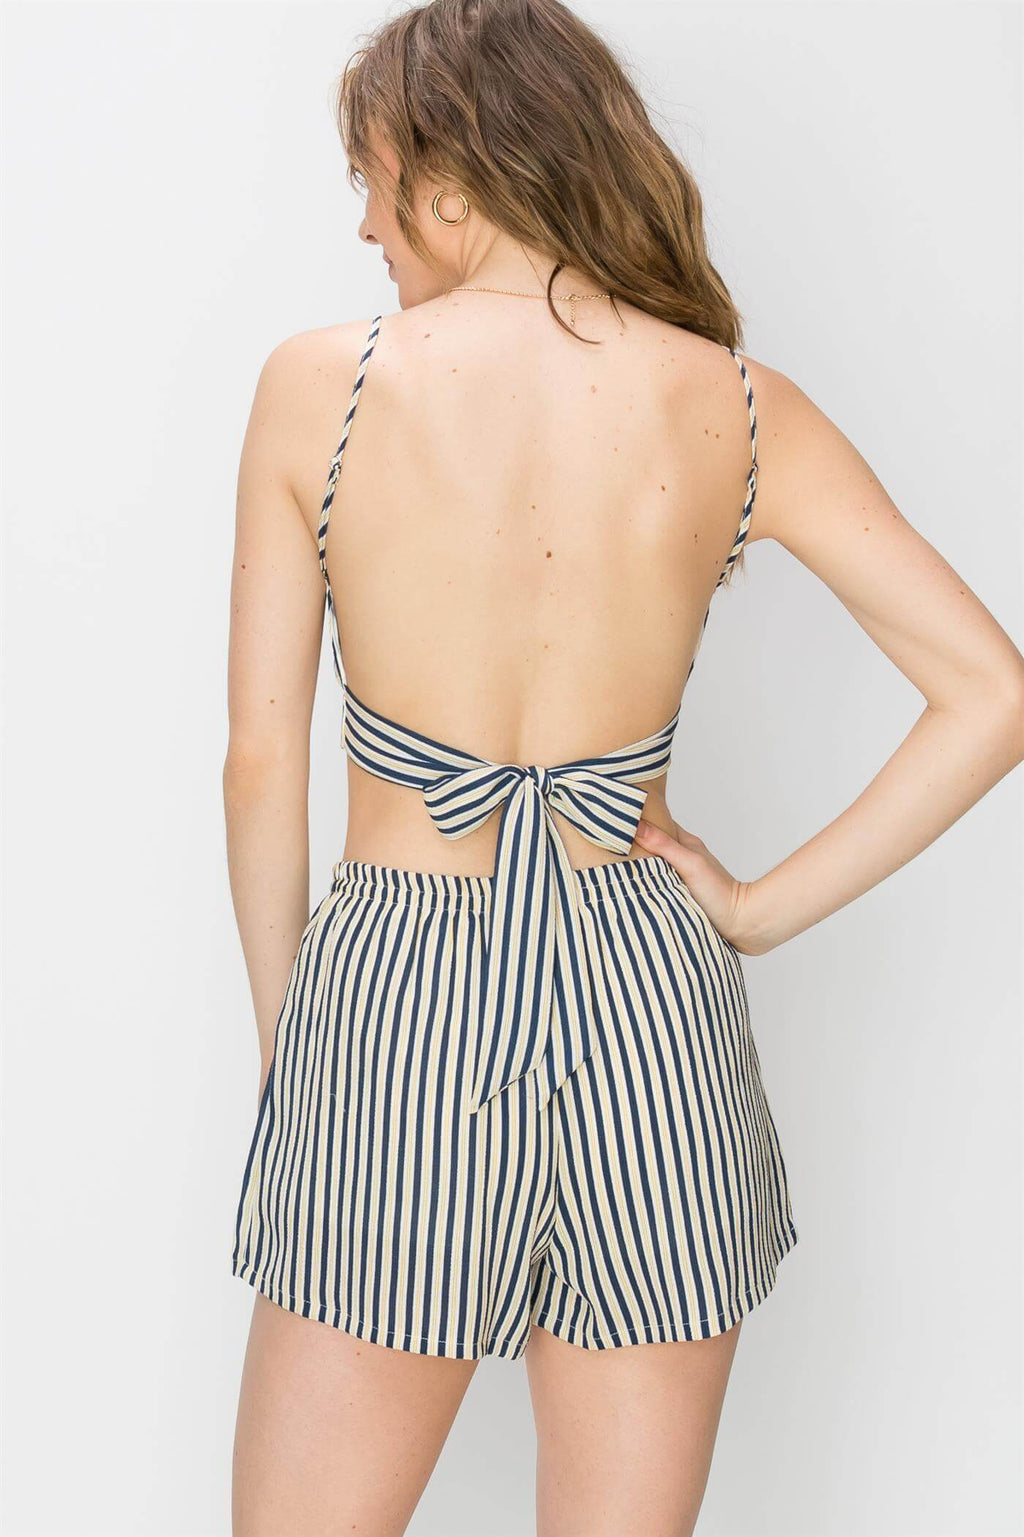 Backless pinstripe top and blouse for women